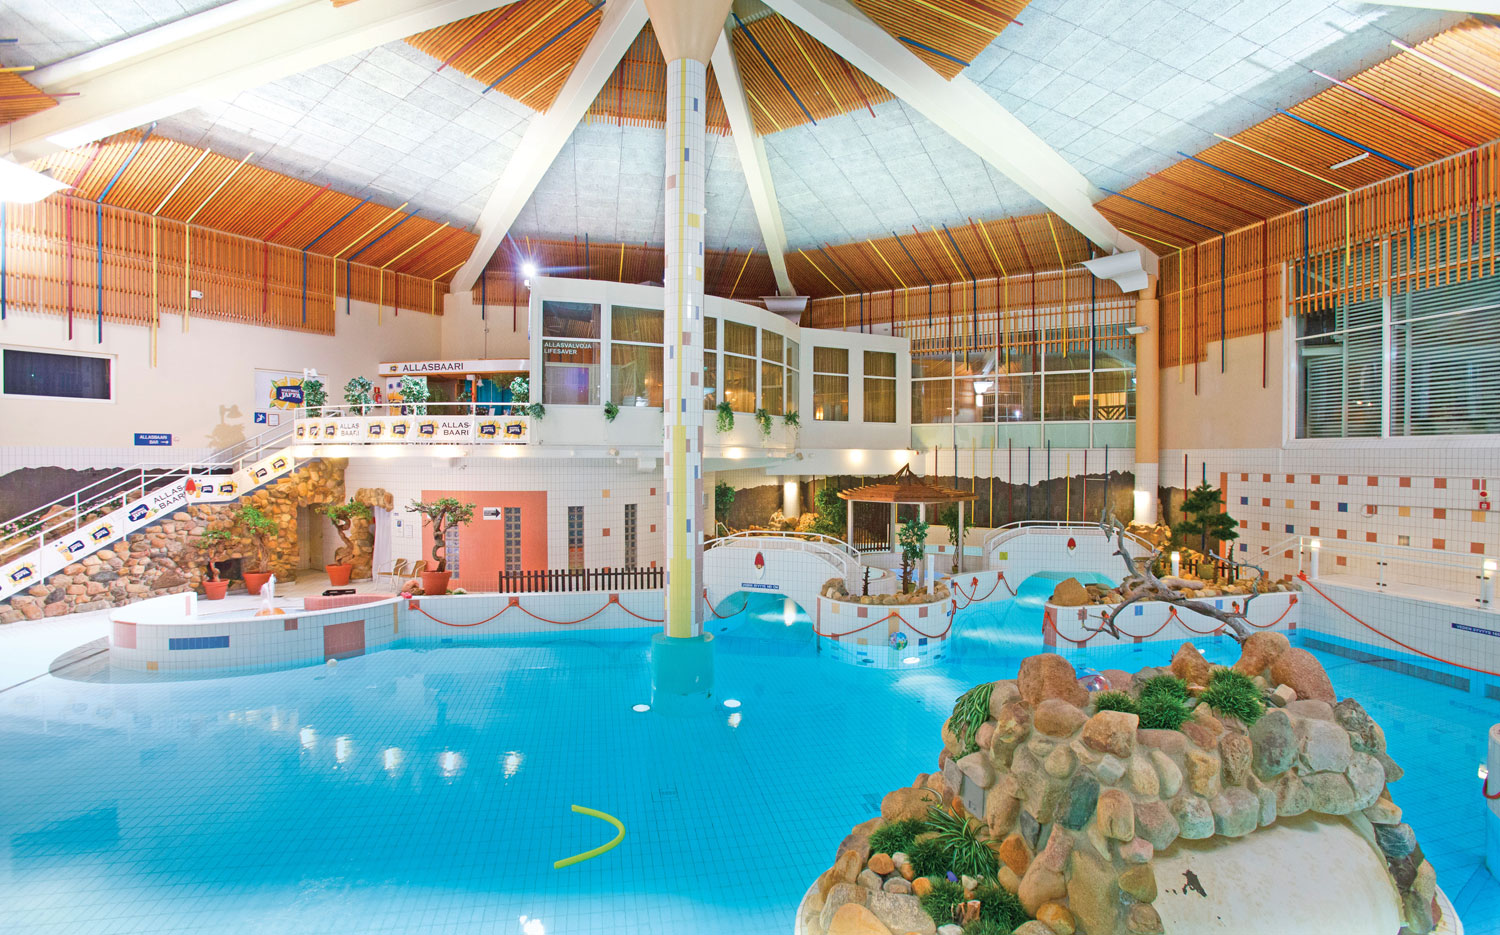 Hotel Holiday_Club_2015_swimming pool.jpg